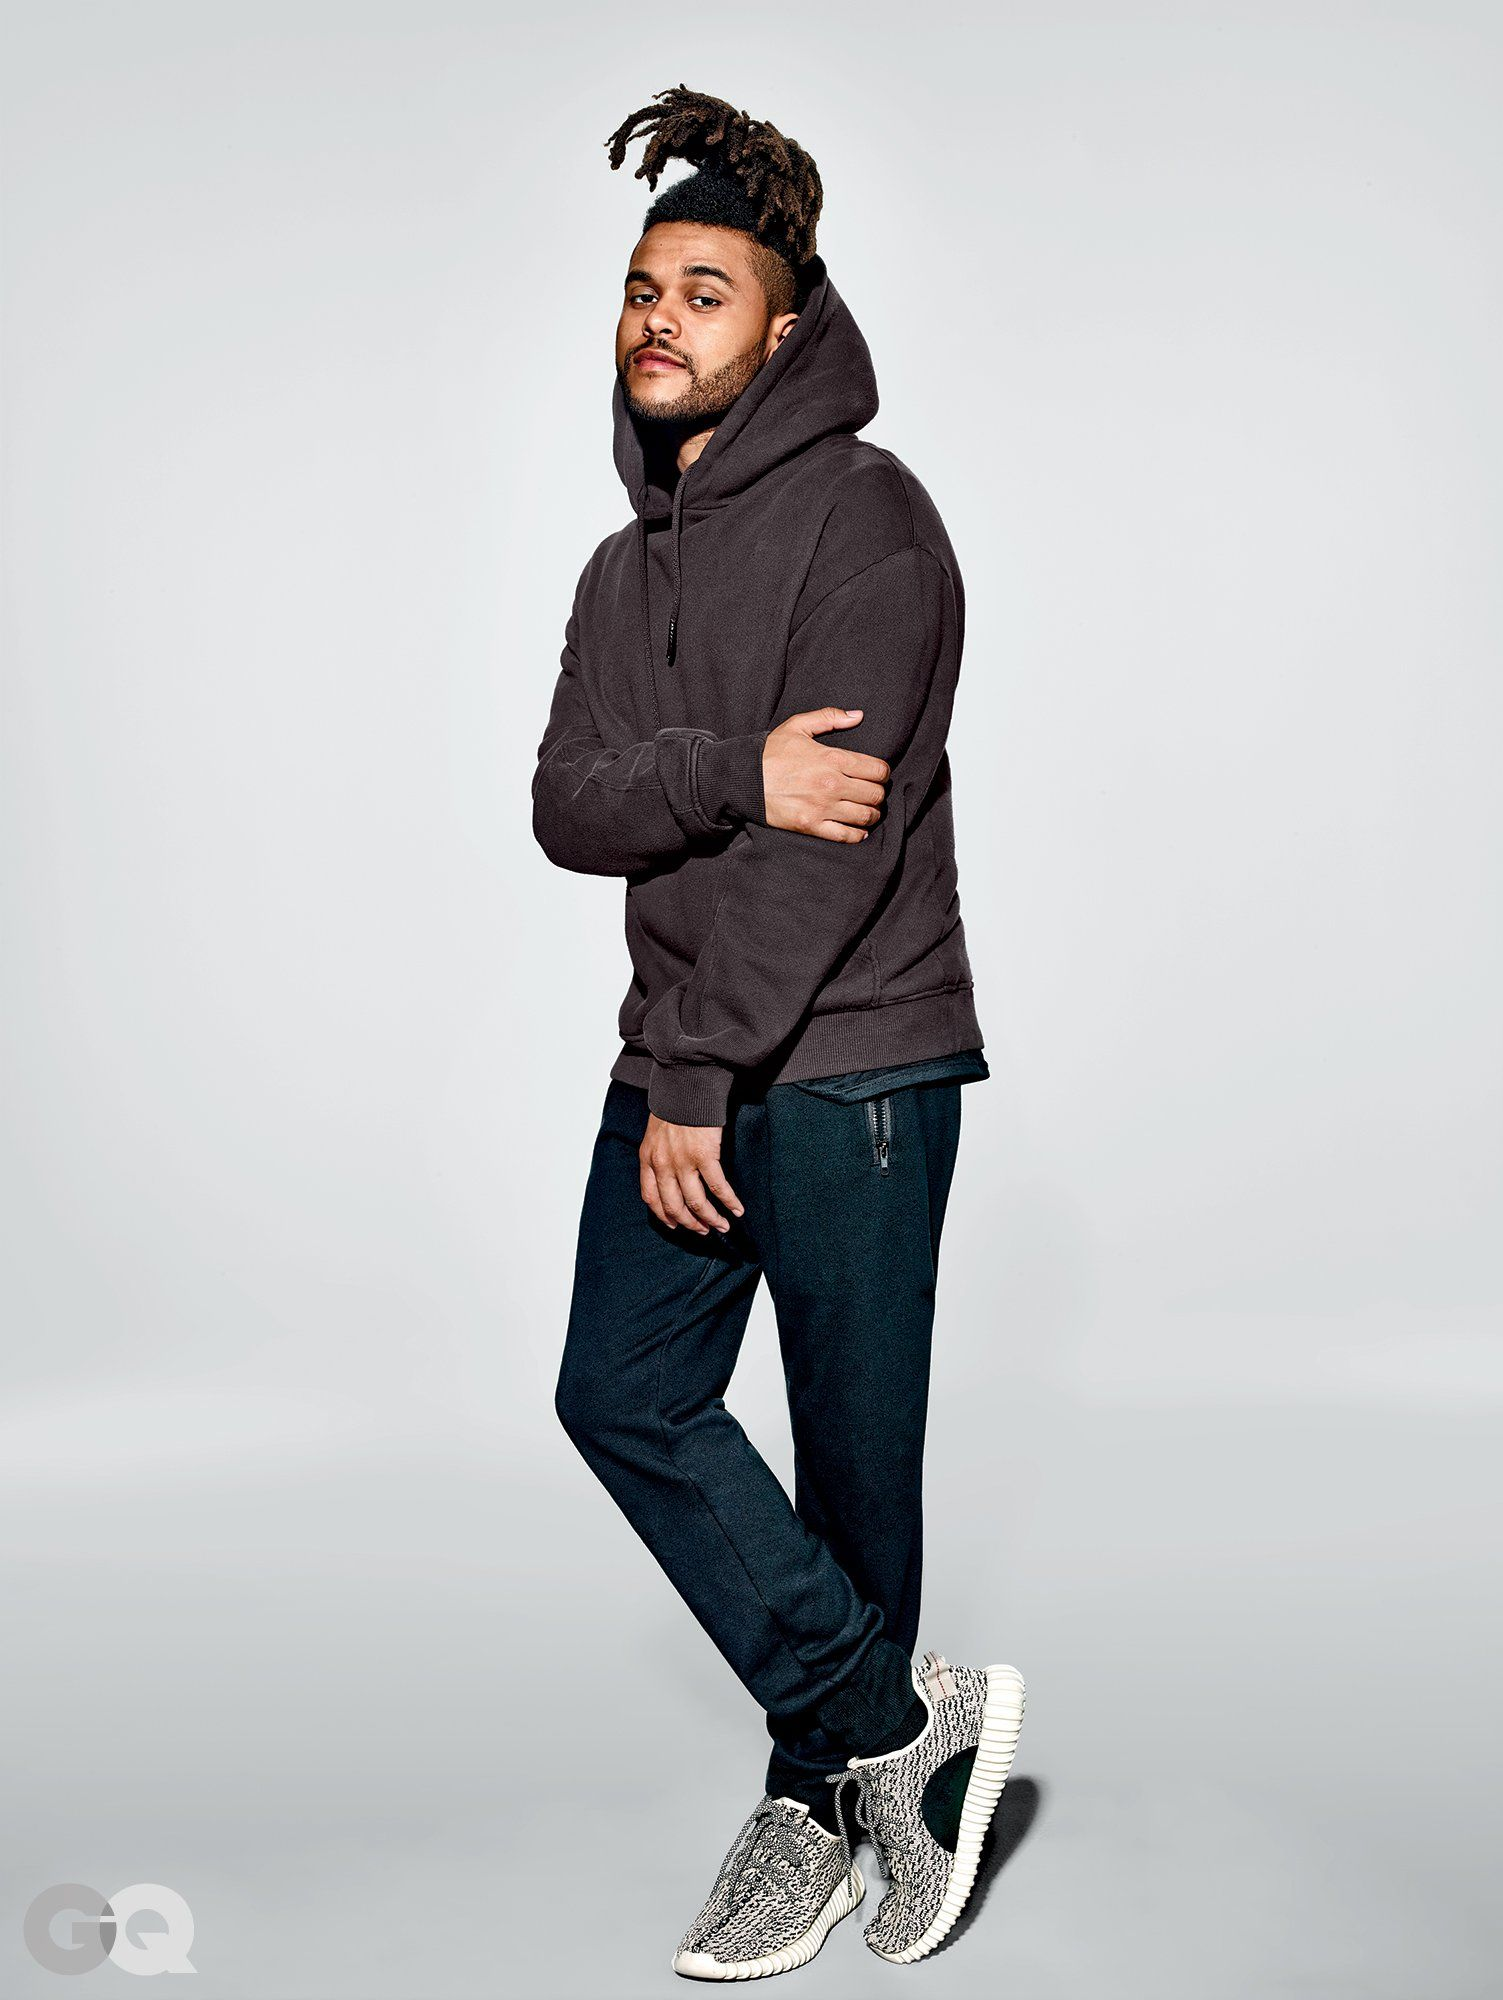 The Weeknd Wears Kanye 39 S New Yeezy Collection Style So Cute And Galleries